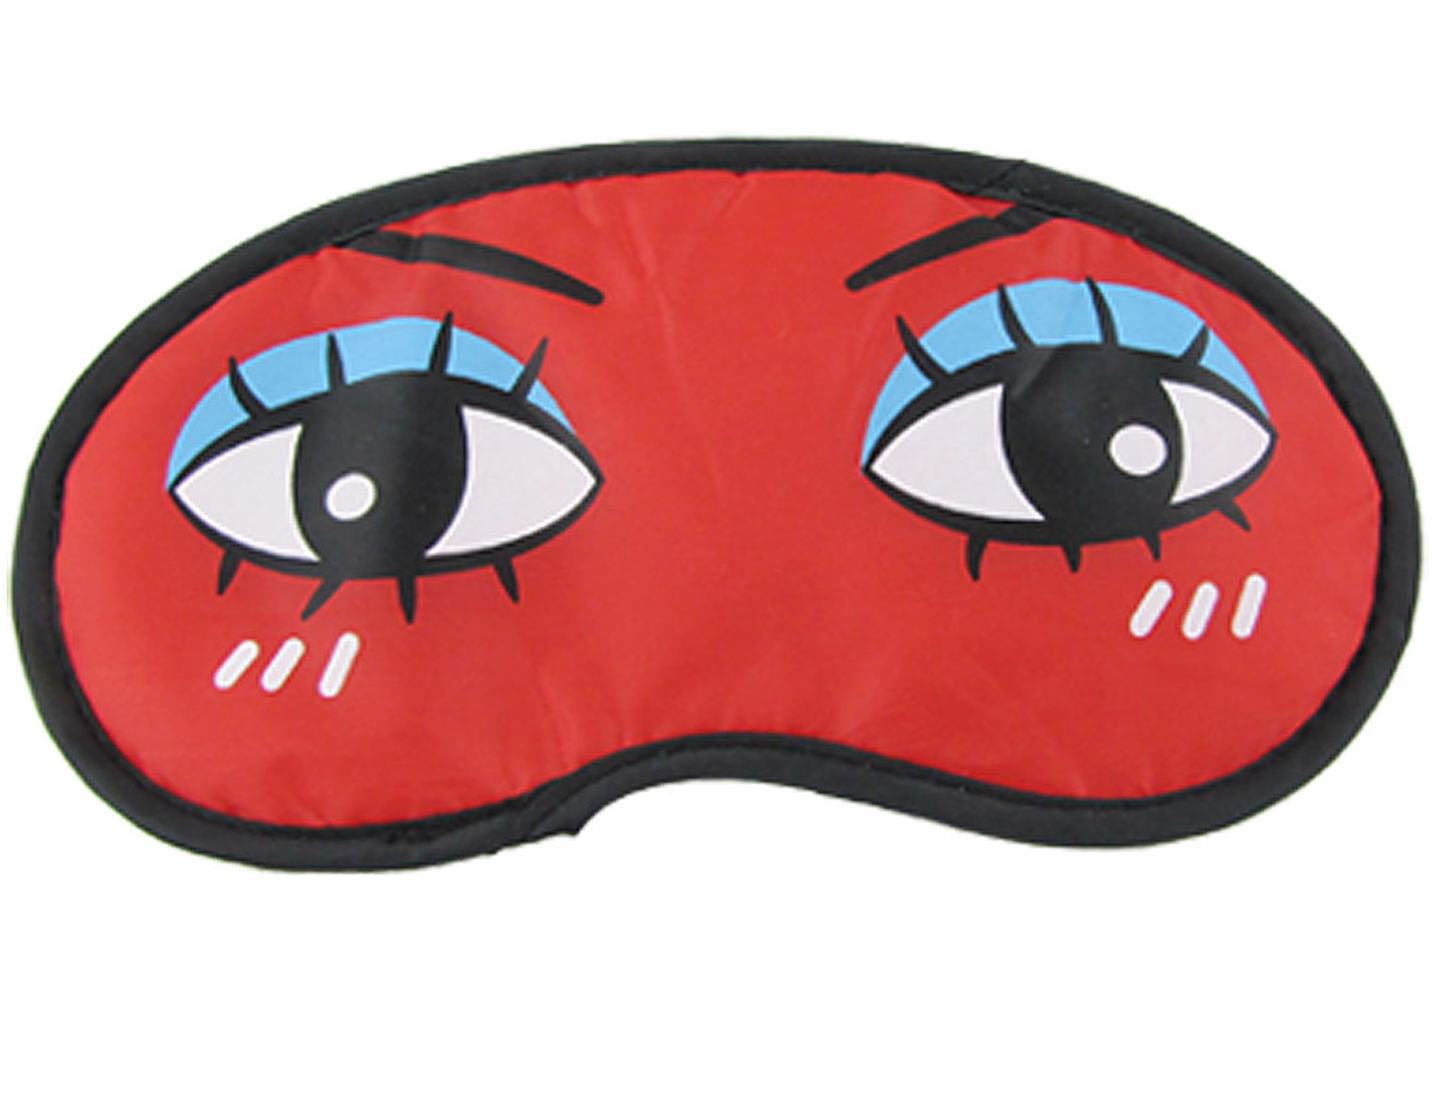 Black Reverse Side Cartoon Travel Sleeping Eye Mask Shade Cover Red